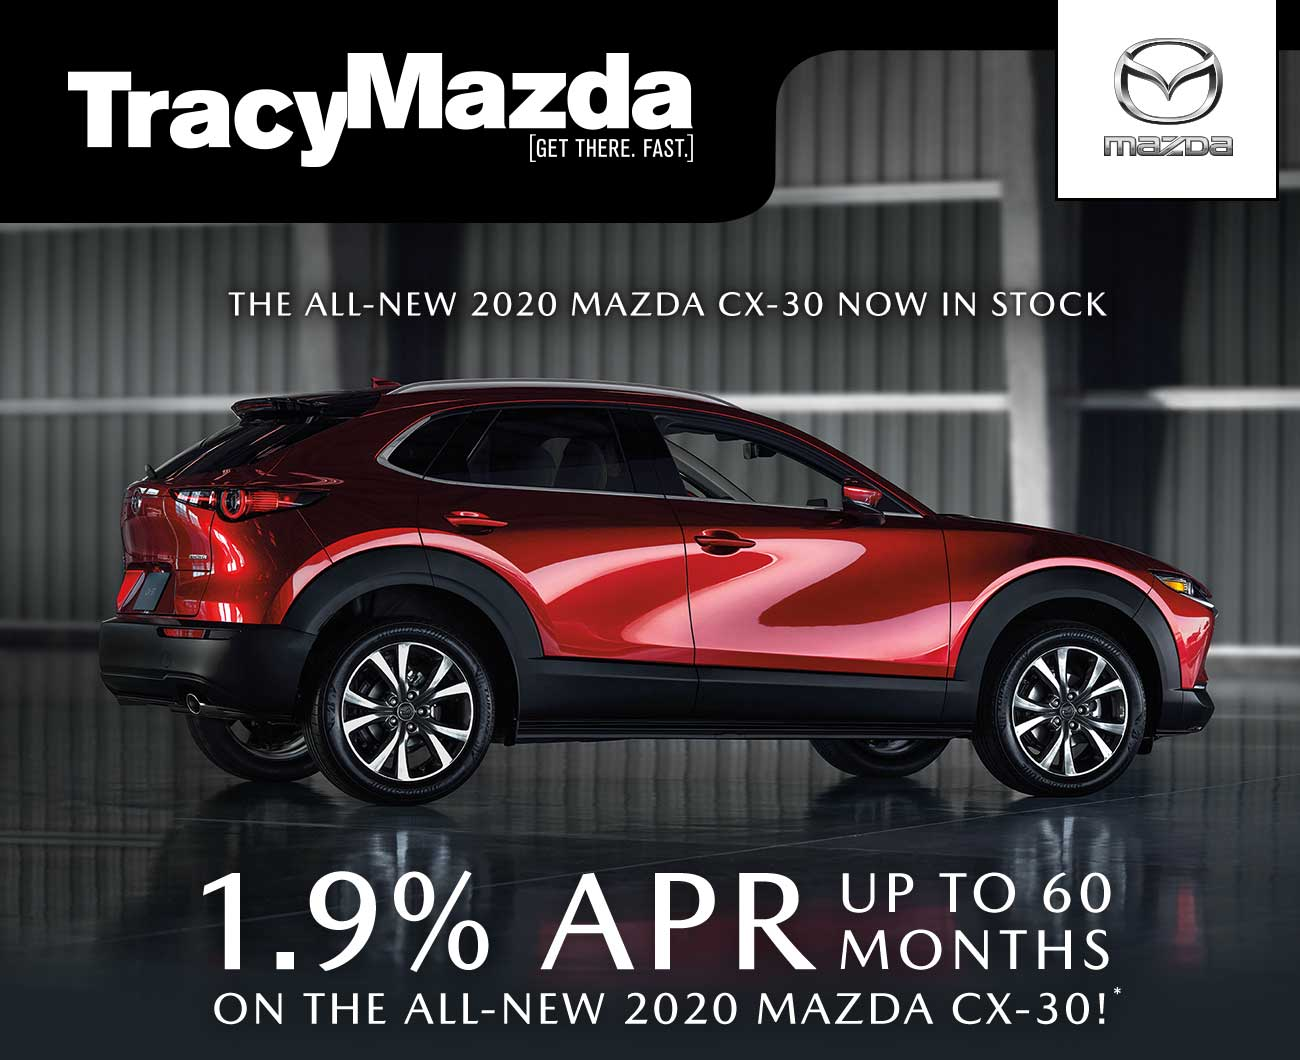 1.9% APR Up To 60 Months on the All-New 2020 Mazda CX-30!*